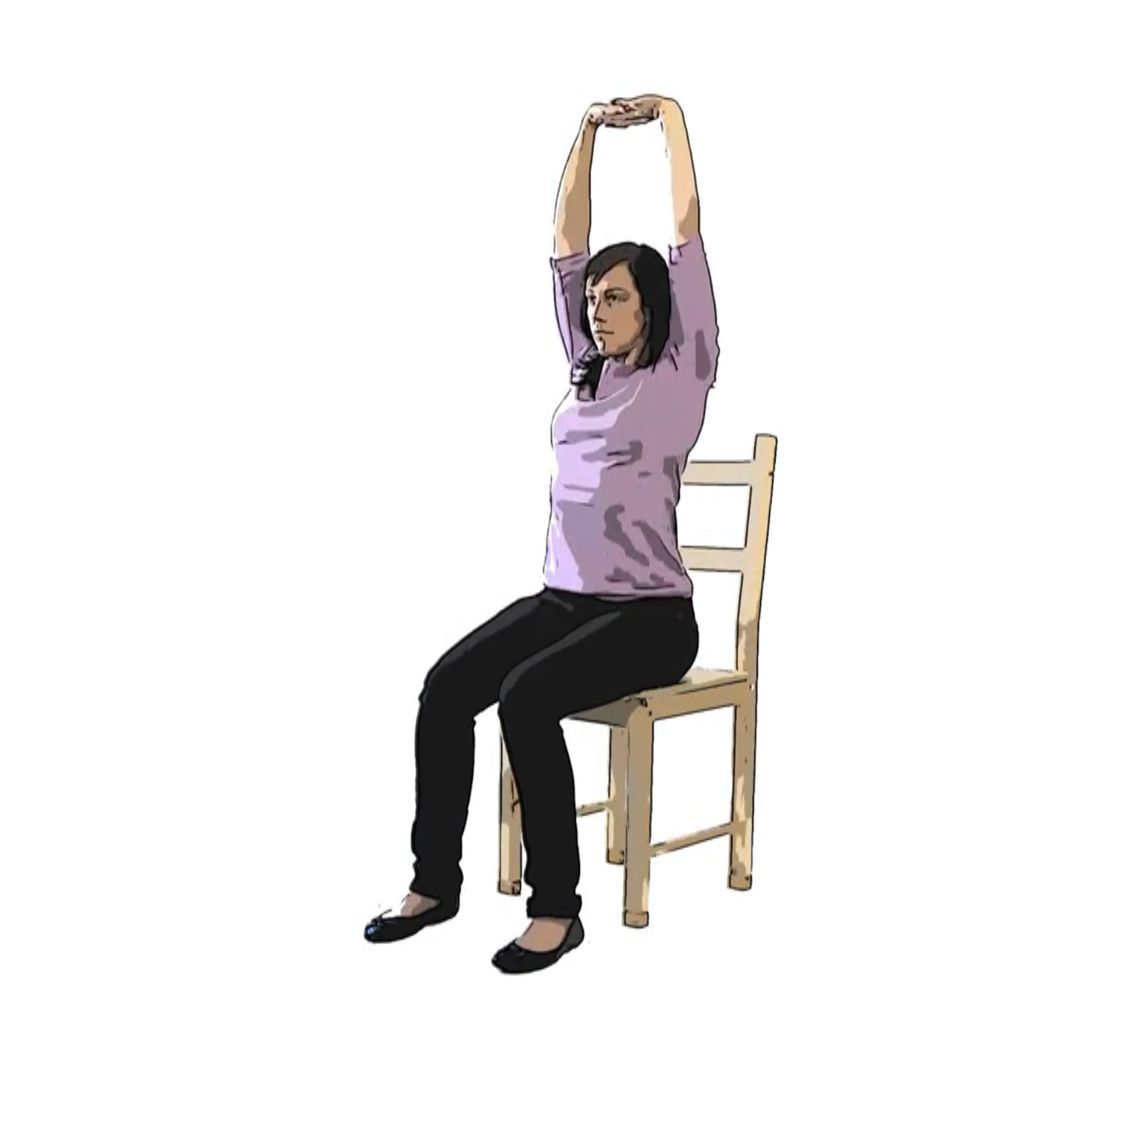 Review of 7 Desk Yoga Apps on office yoga guy, office yoga easy, office photography, office yoga poses, computer yoga, office stretches, office fitness, office chairs for heavy people, office yoga book, office chairs on sale, bed yoga, office chairs for back pain, office wing chairs, desk yoga, office weapons, office meditation, office furniture design,